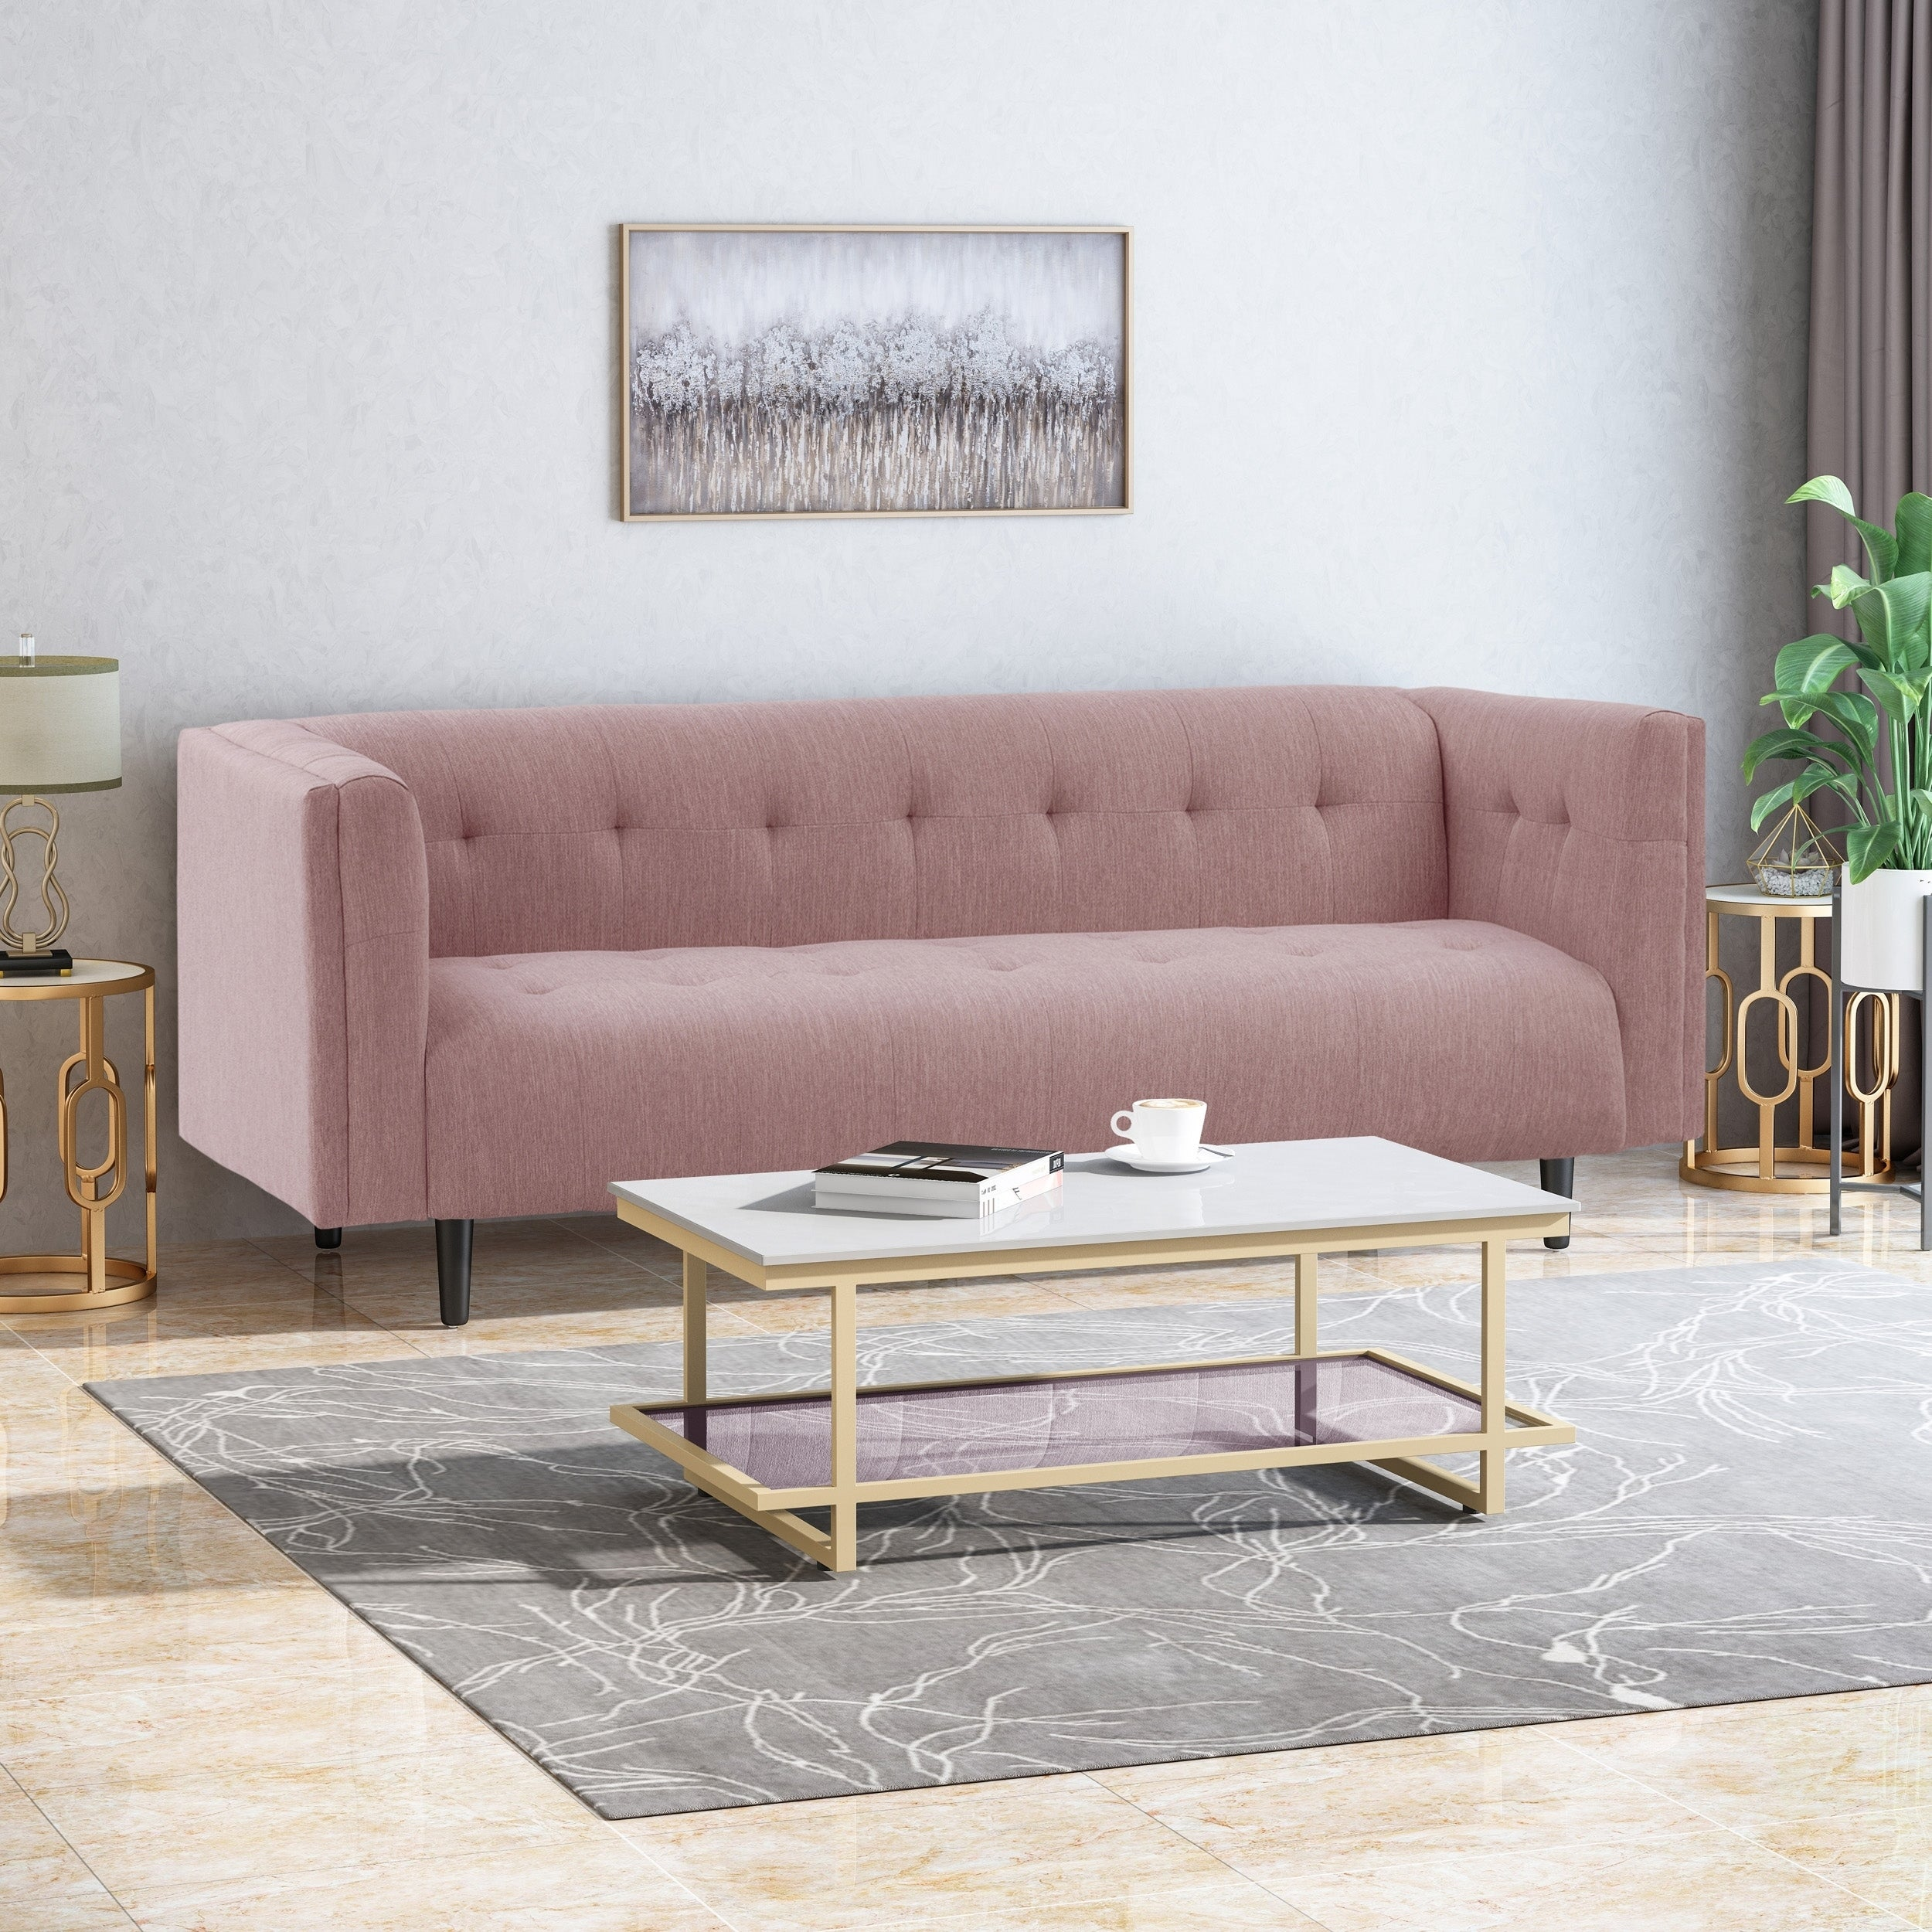 Shop Ludwig Mid-Century Modern Fabric Upholstered Tufted 3 Seater ...